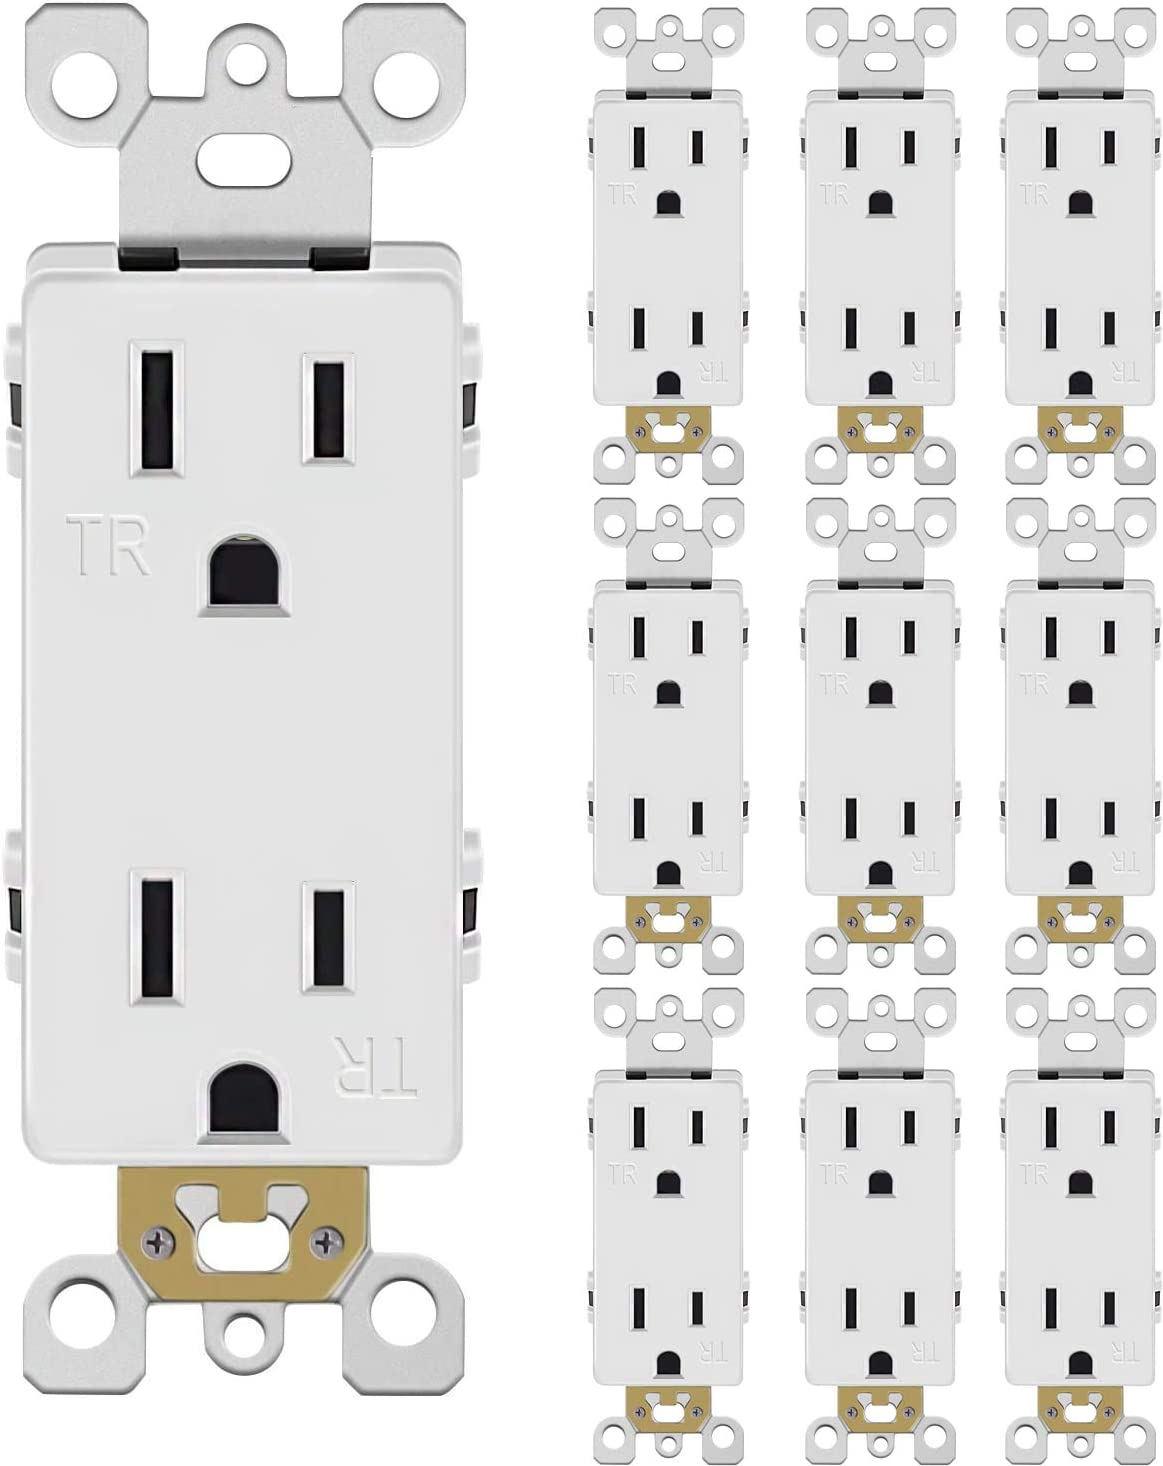 Outlet Decora Duplex Receptacle, 15 Amp, 125 Volt, Tamper Resistant, Grounding UL listed White, (15A outlet 10pack)